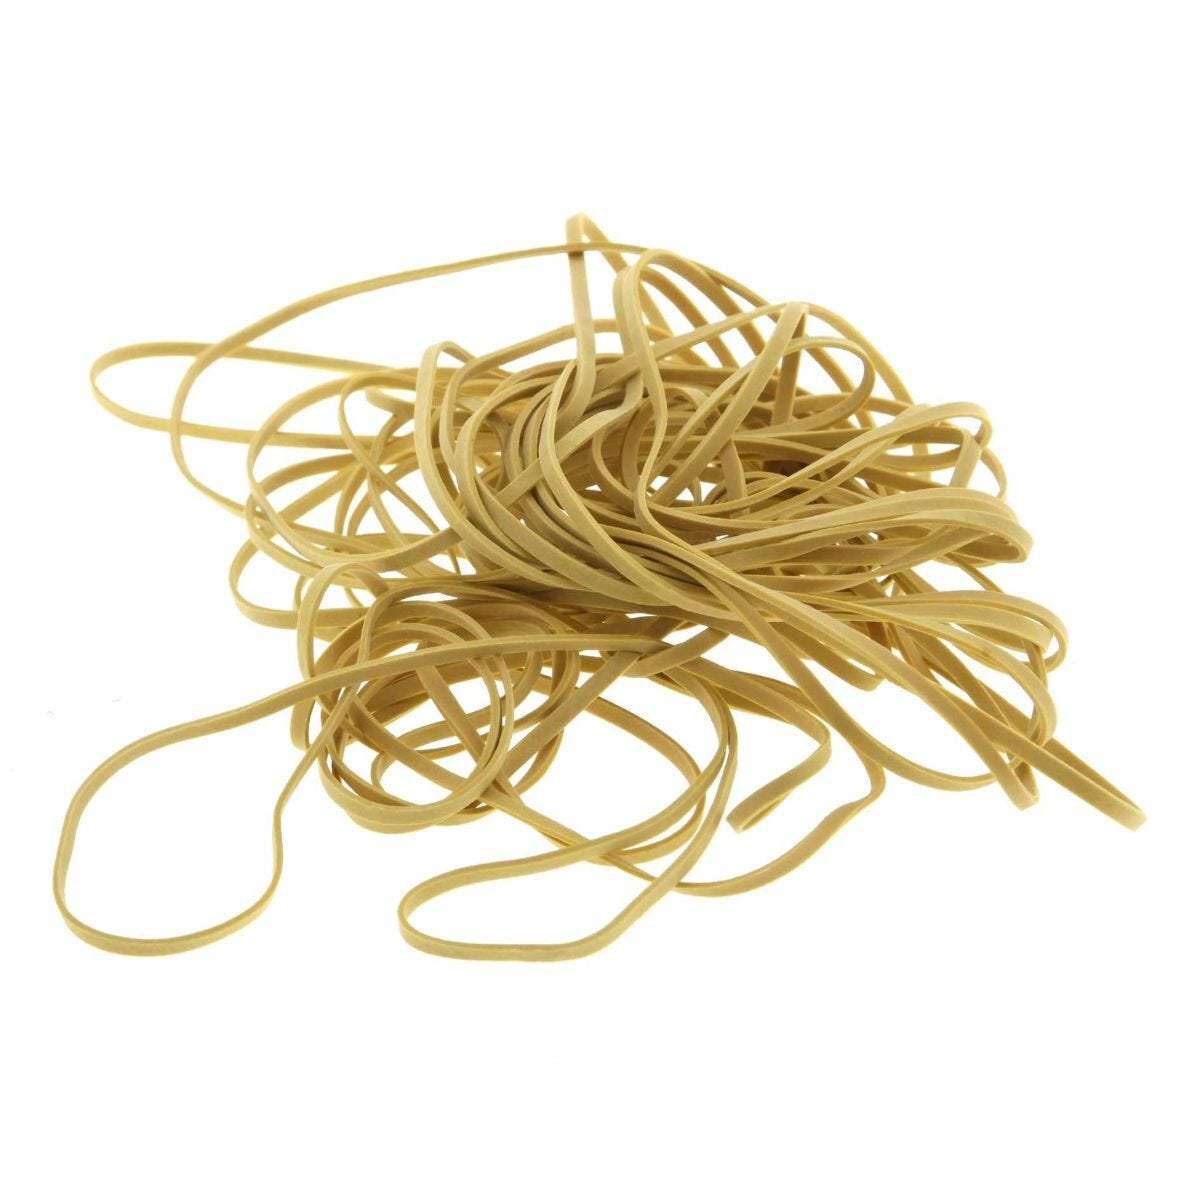 Rubber Bands 50g